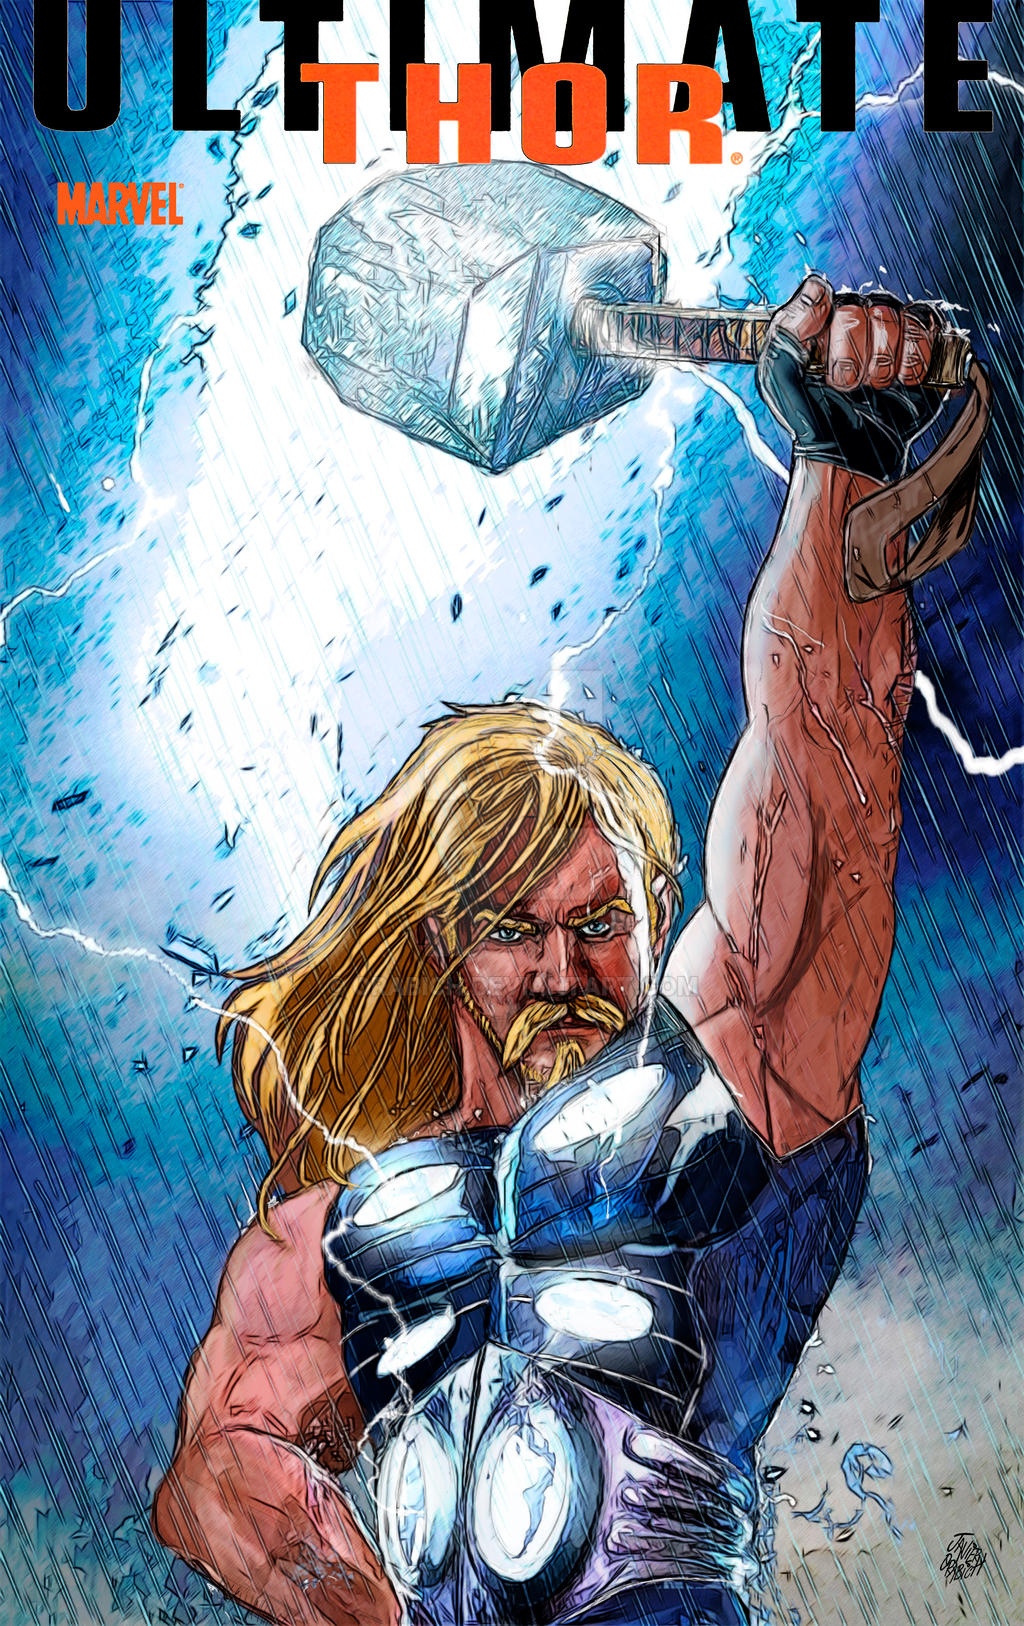 ULTIMATE THOR. by orab...